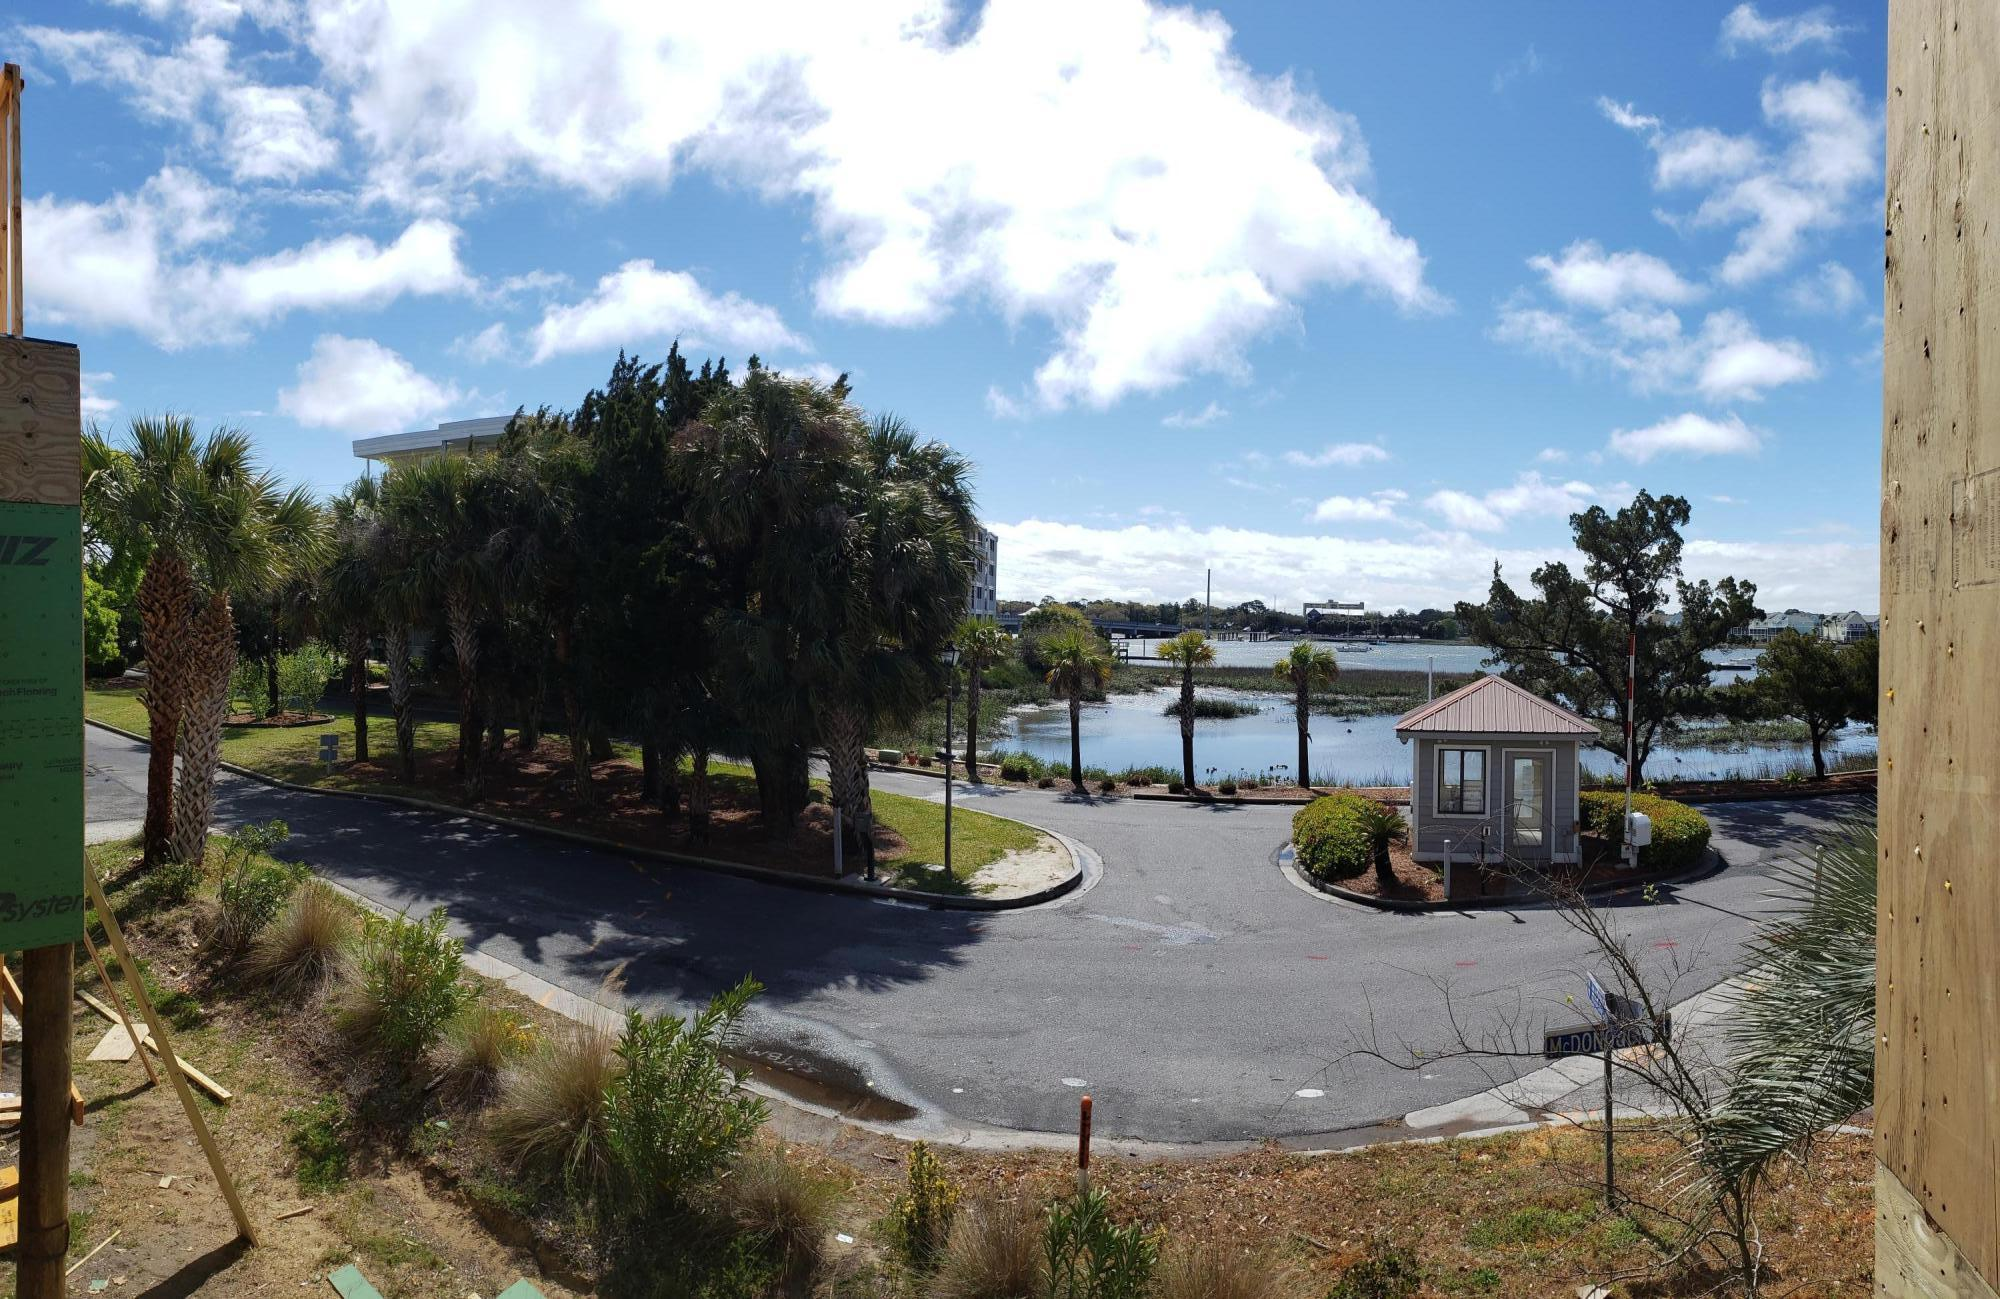 Mariners Cay Homes For Sale - 16 Mariners Cay, Folly Beach, SC - 37